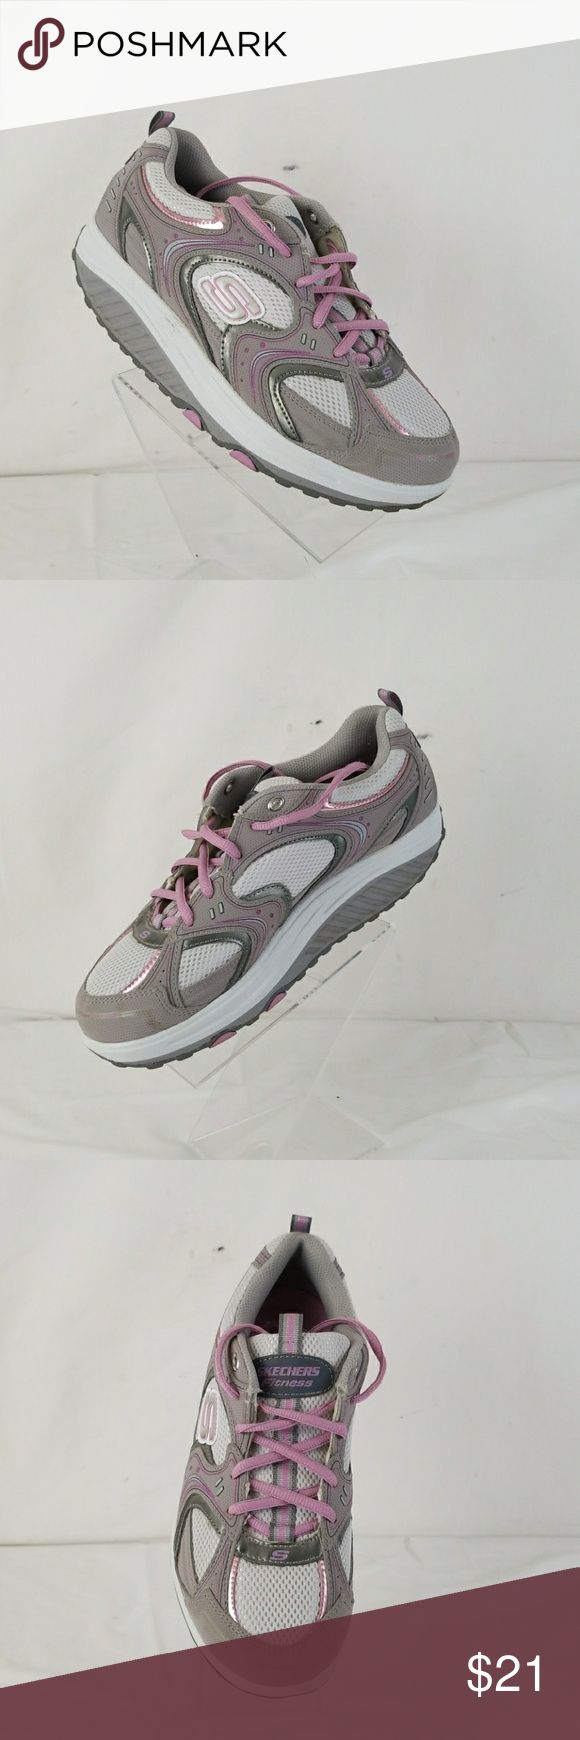 skechers shape up fitness women's shoes size 8 pre owned women's skechers shape up fitness shoes size 8.in great condition  From smoke free environment  check my closet for great deals Skechers Shoes Athletic Shoes